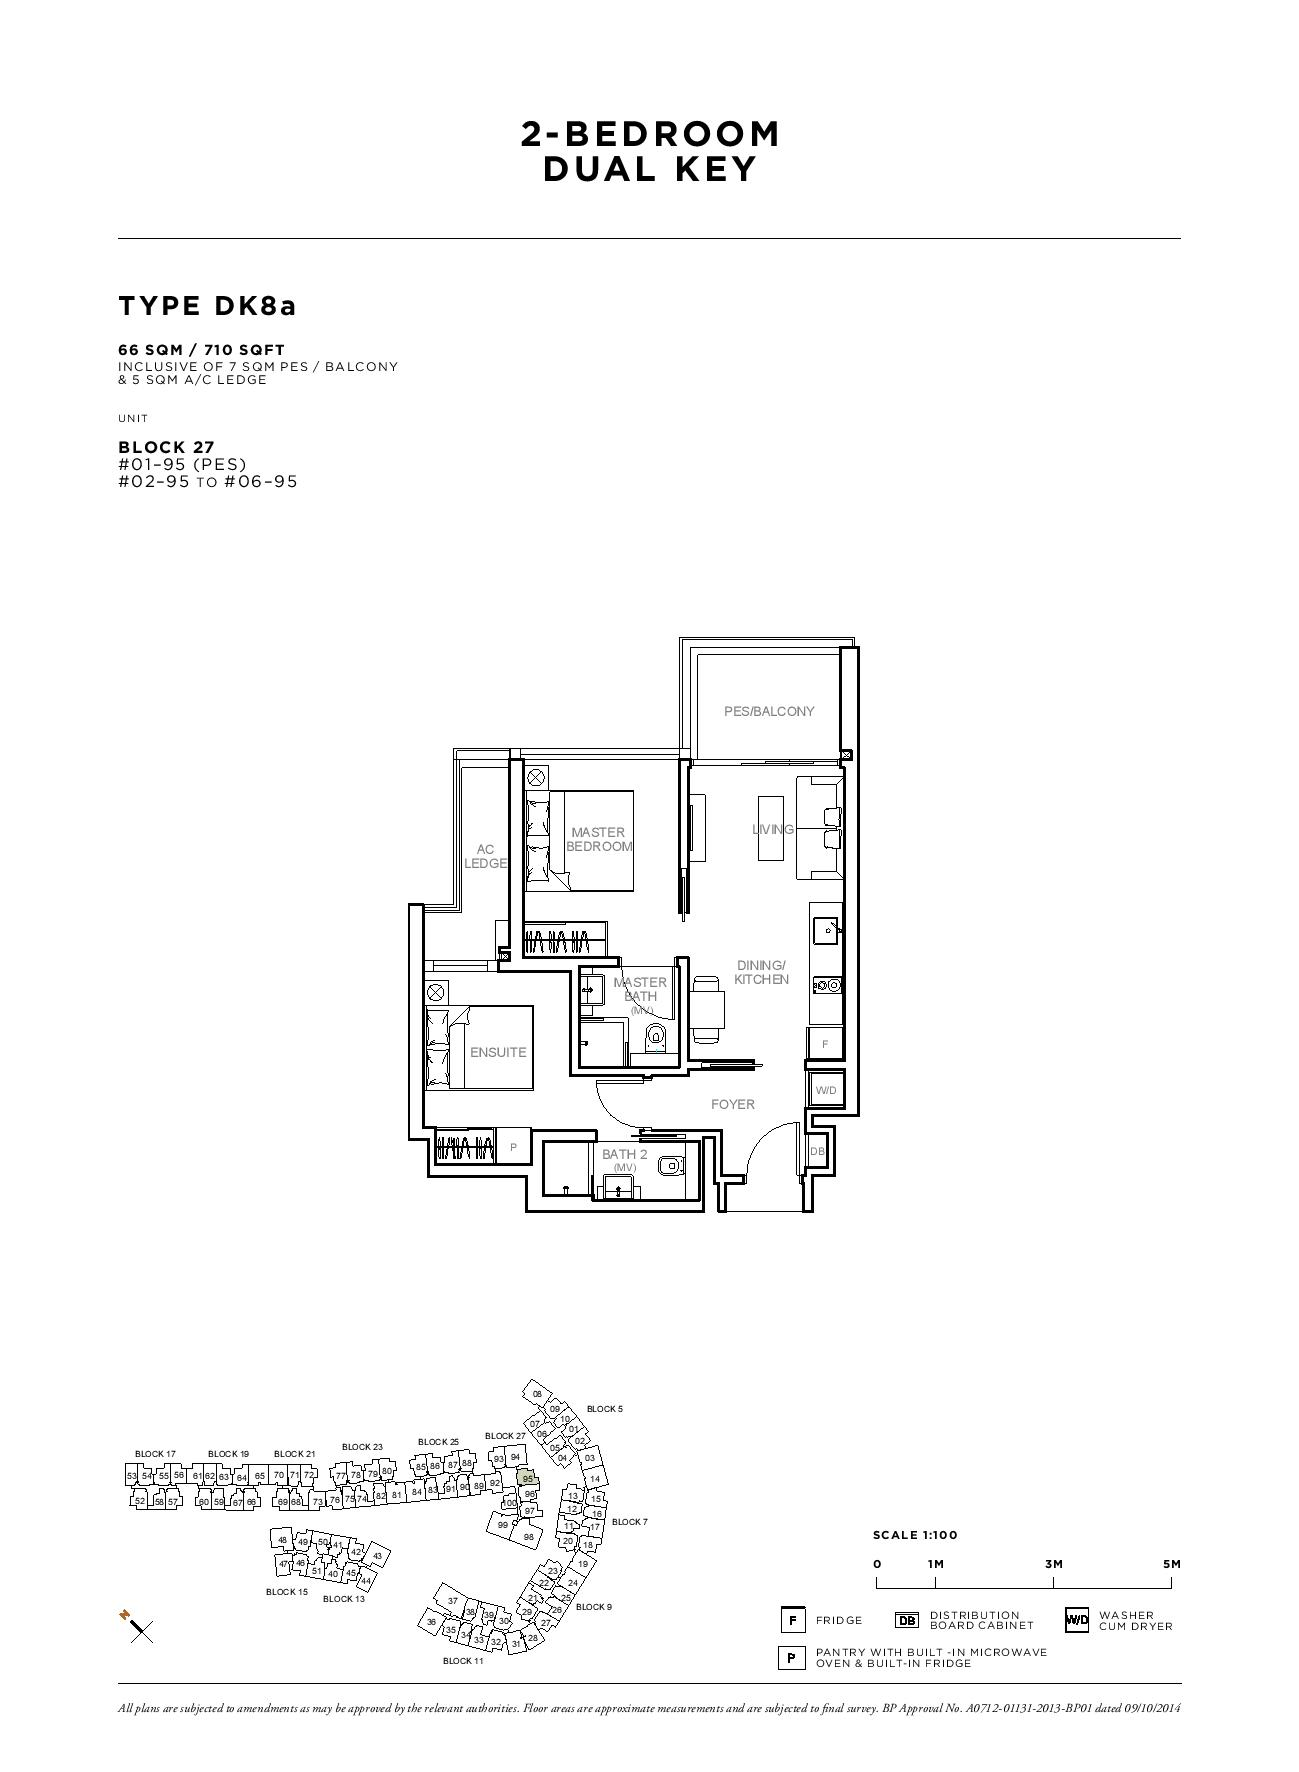 Sophia Hills 2 Bedroom Dual Key Type DK8a Floor Plans